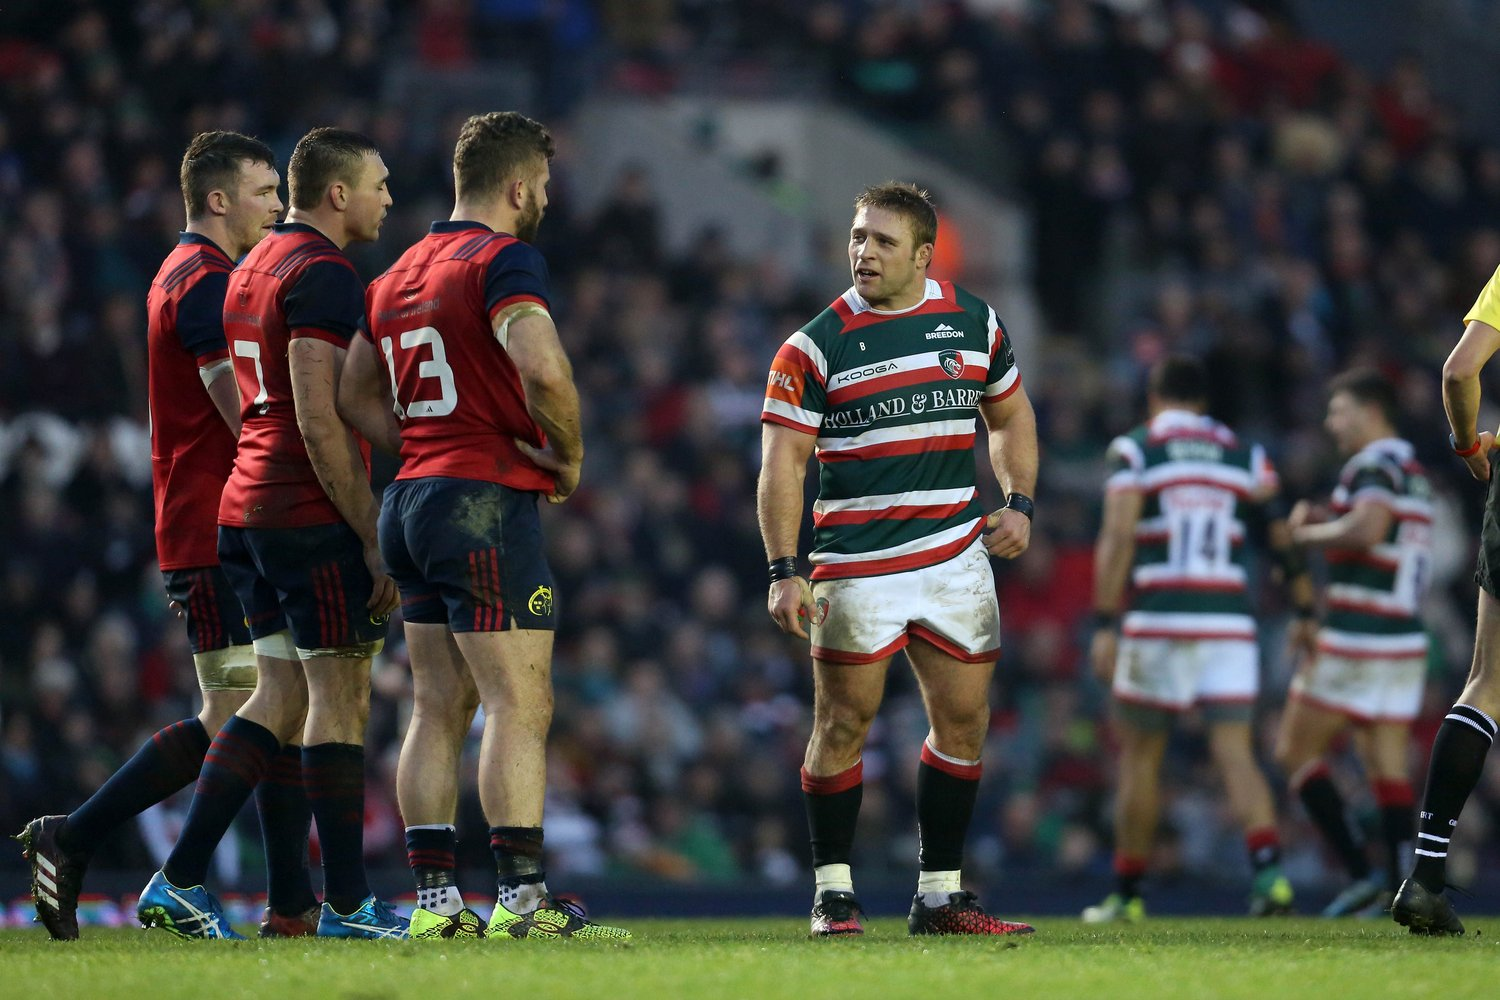 Tom Youngs against Munster Rugby